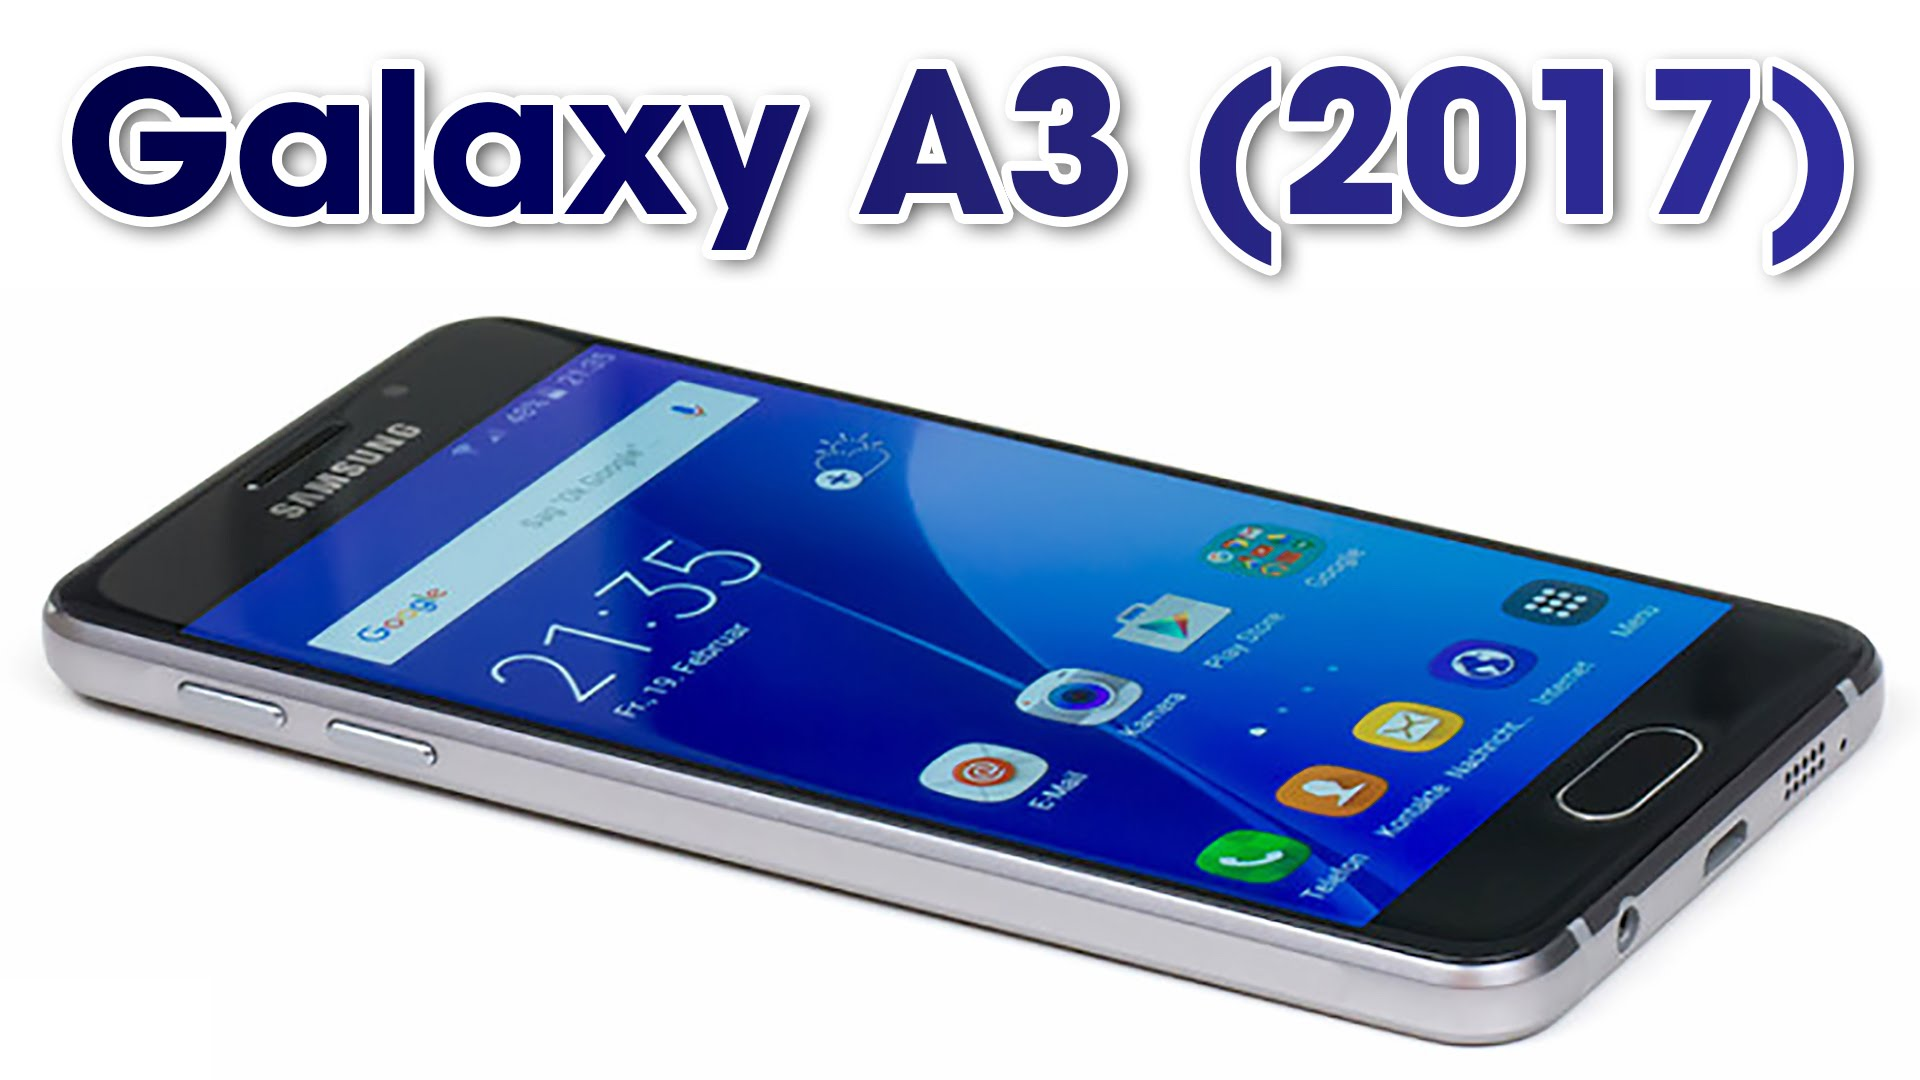 samsung galaxy a3 2017 receives bluetooth certificate and will release in february thetechnews. Black Bedroom Furniture Sets. Home Design Ideas